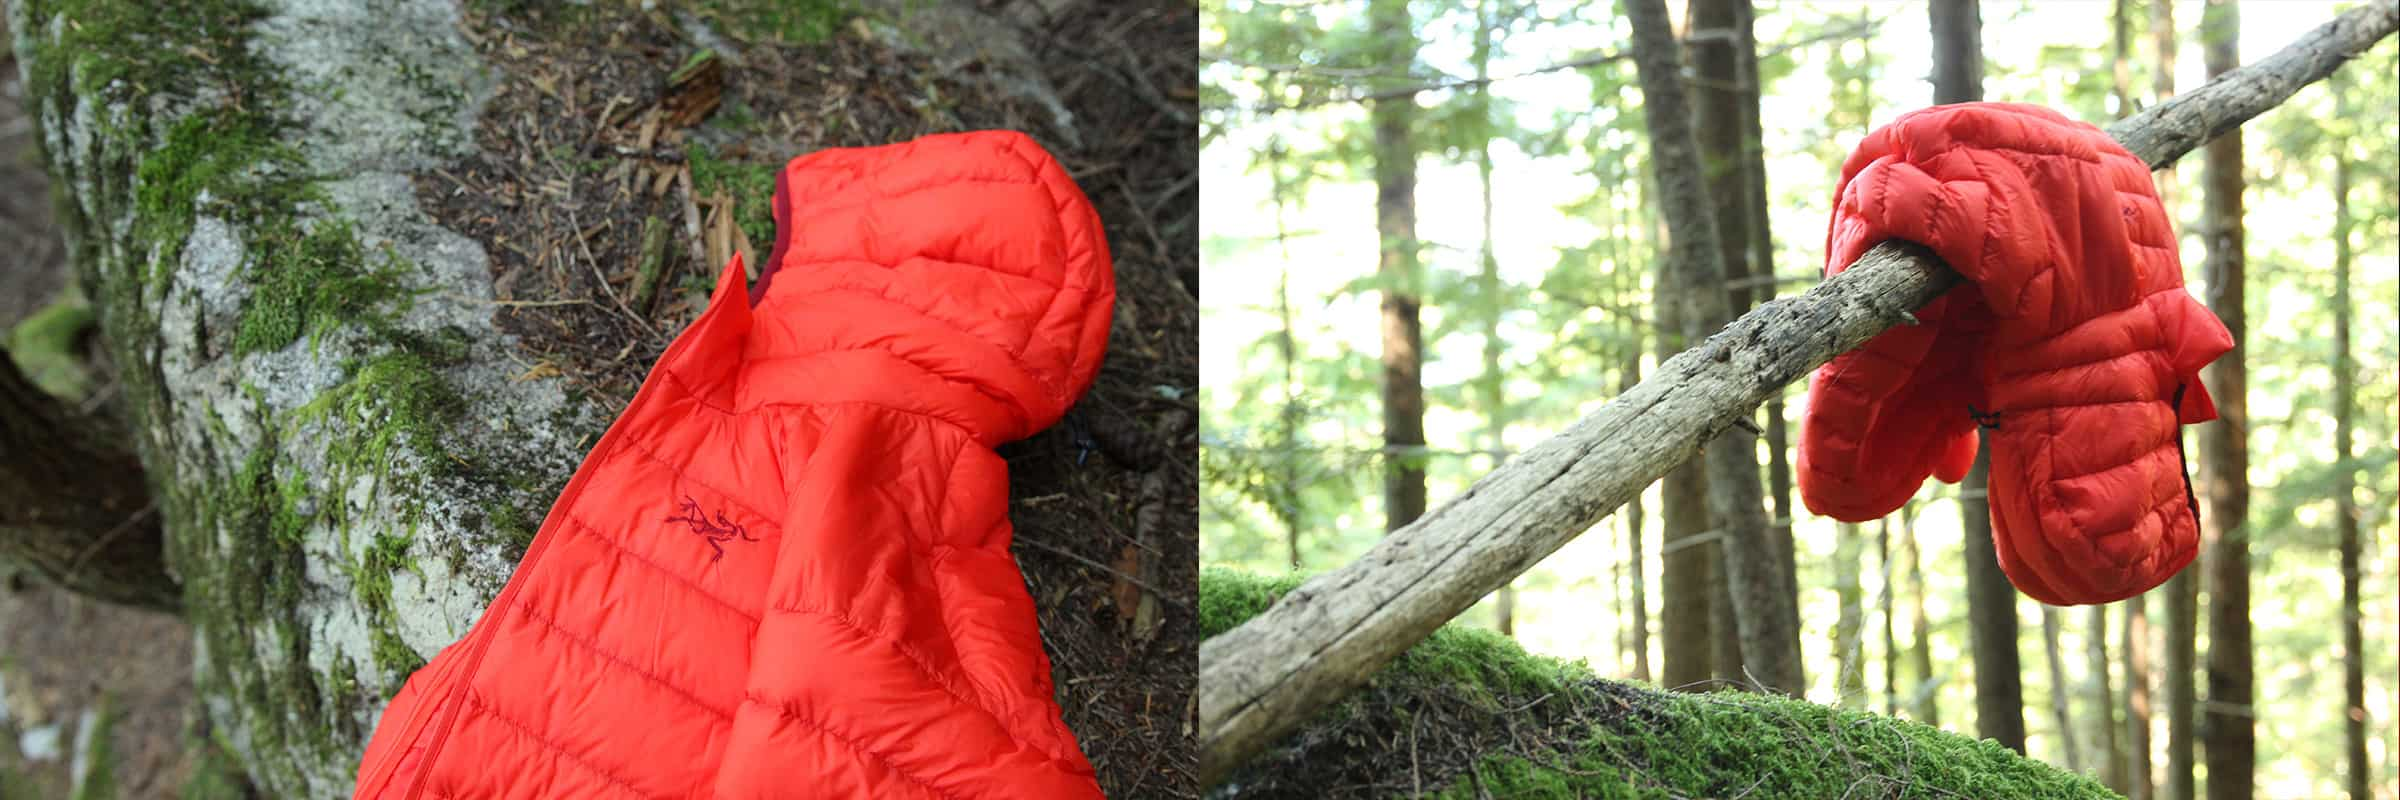 cerium lt hoody in the forest